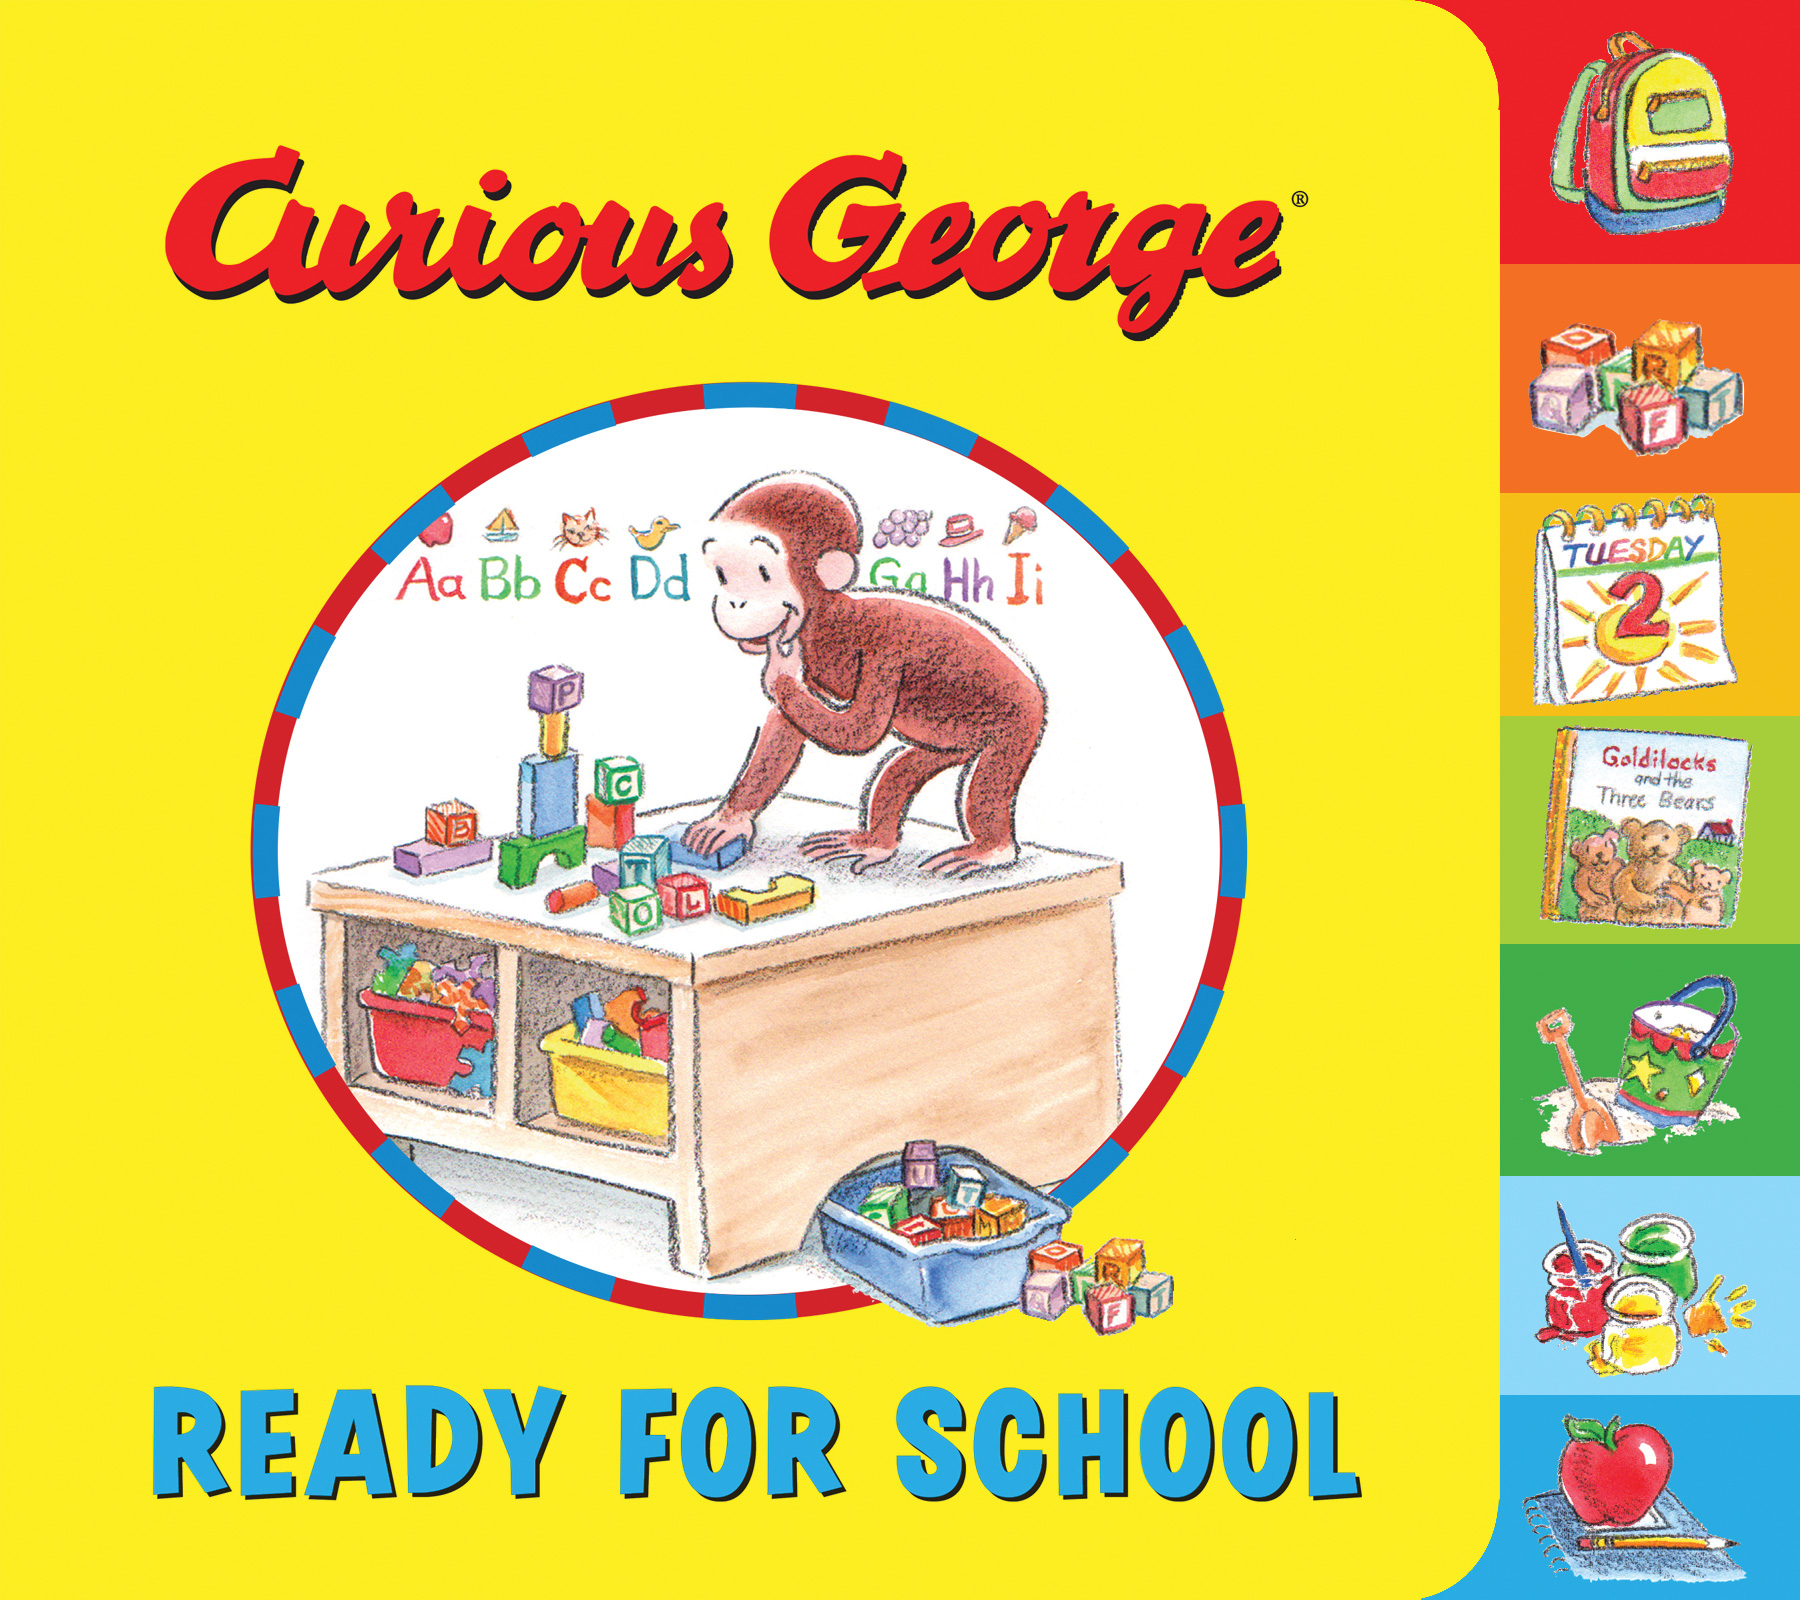 Curious George Ready for School (tabbed board book)-9780544931206